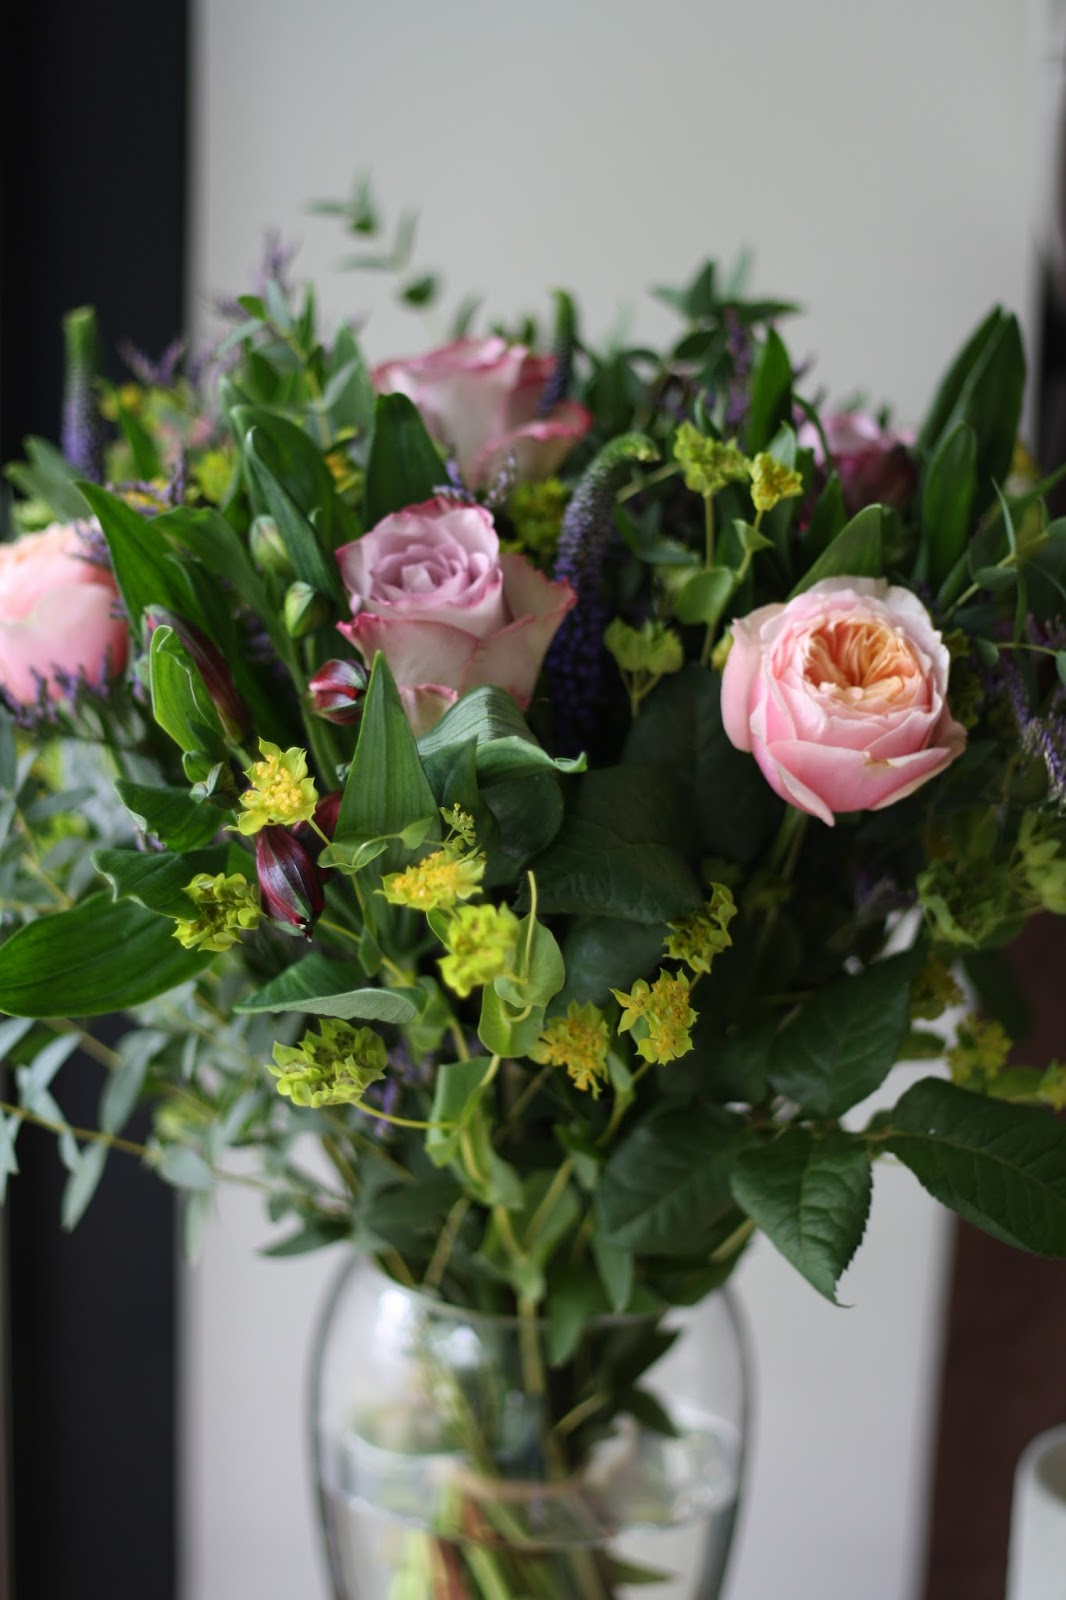 appleyard-london-flowers-blog-review-peach-parfait-bouquet